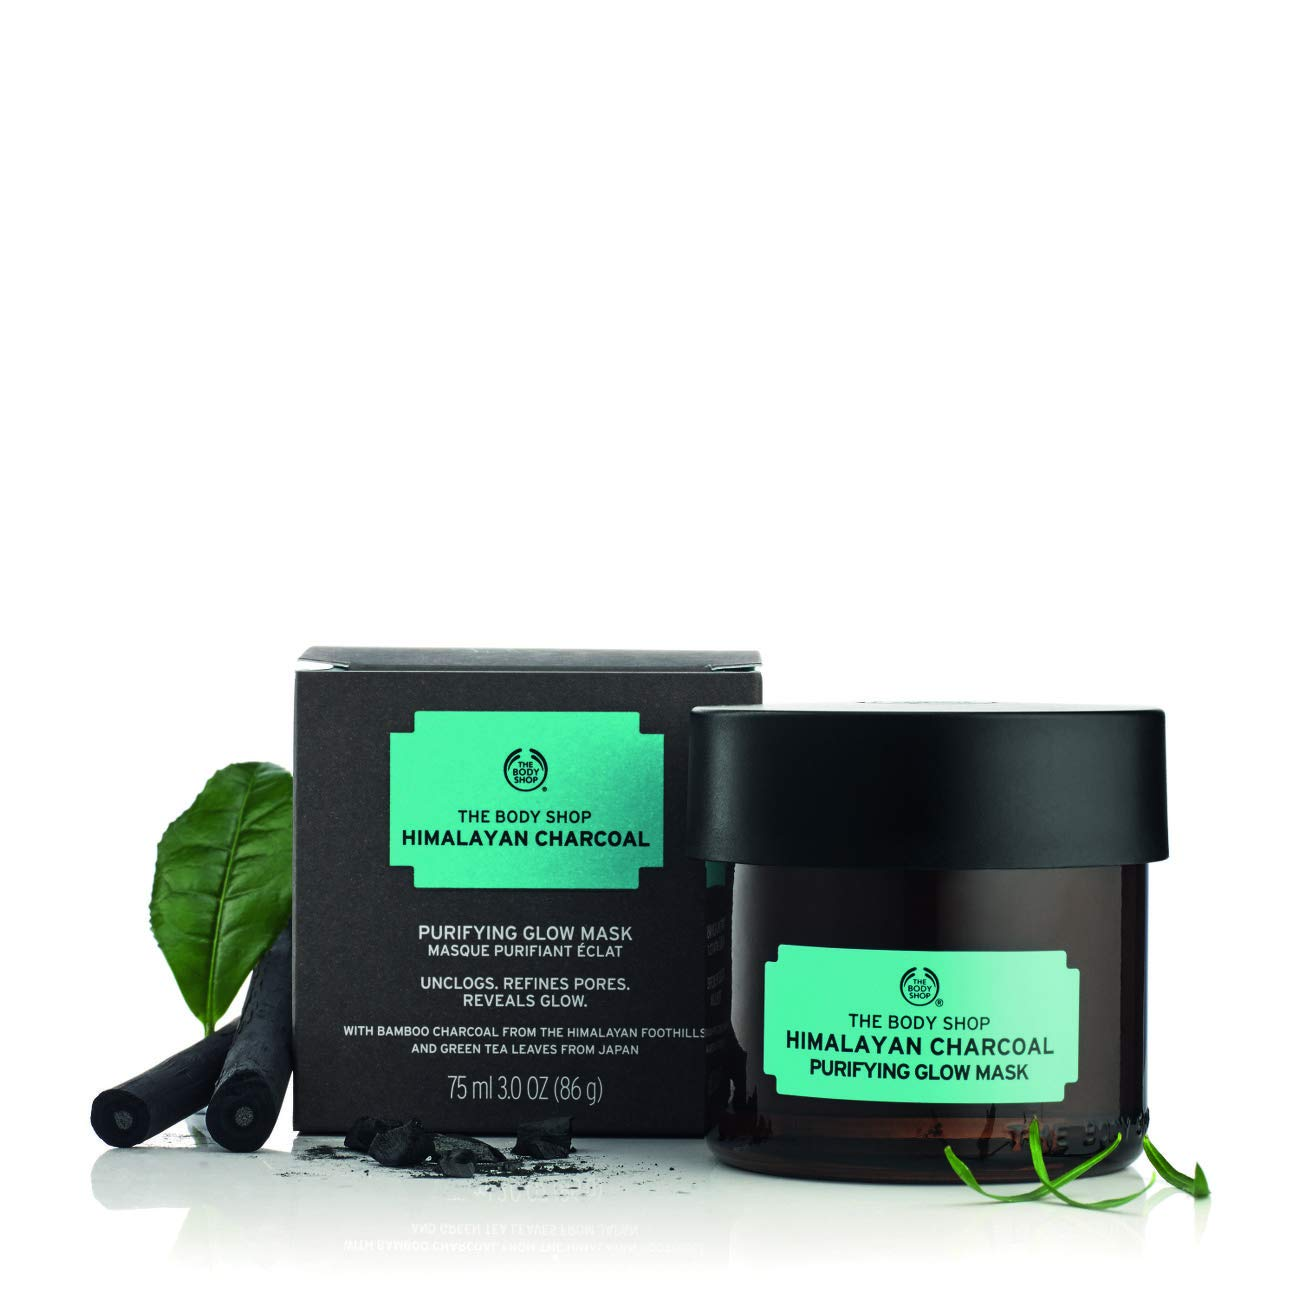 The Body Shop Himalayan Charcoal Purifying Glow Face Mask